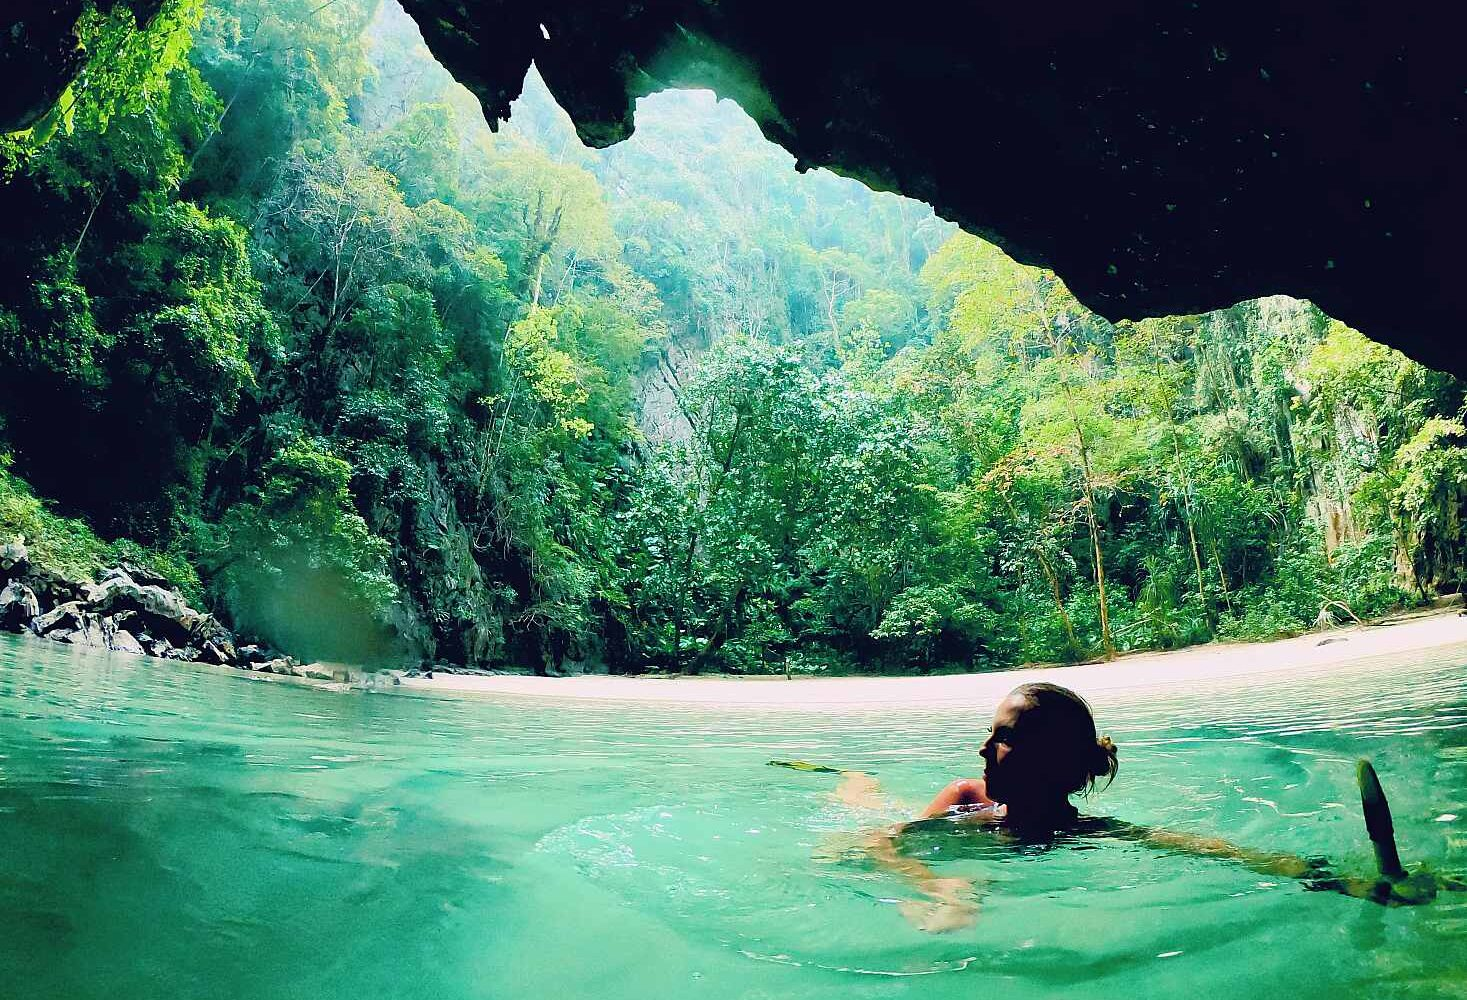 woman swimming in the cave with the Emerald Cave in the background